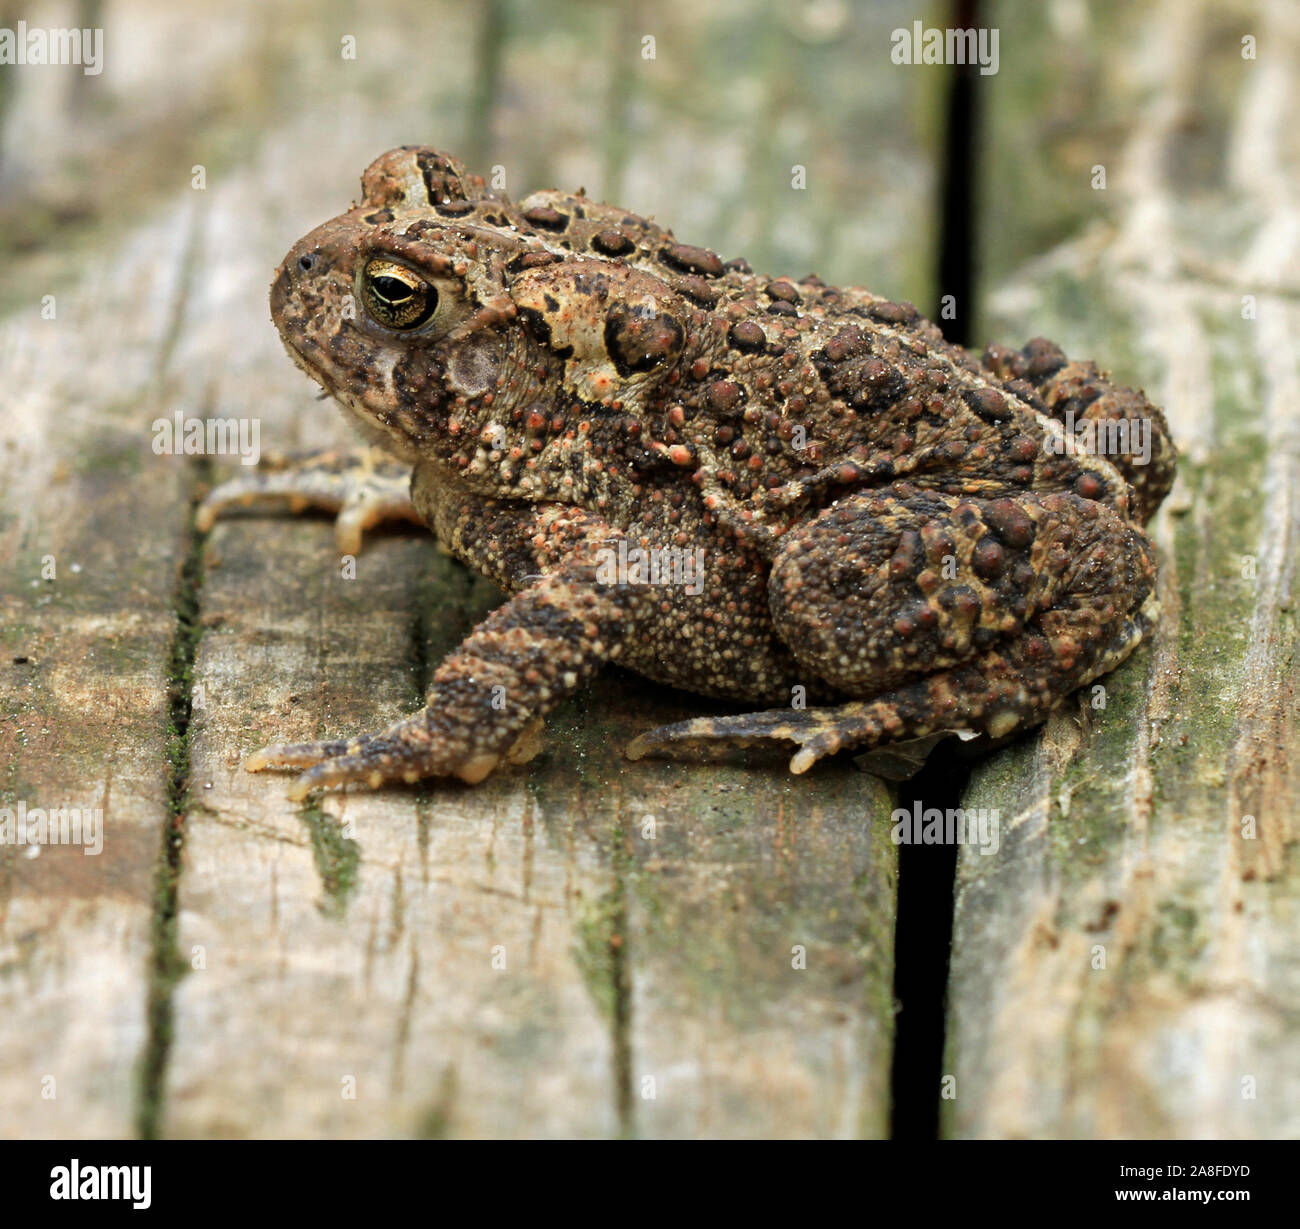 Close-up side view of an adult Fowler's toad (Anaxyrus fowleri) in Spring Stock Photo